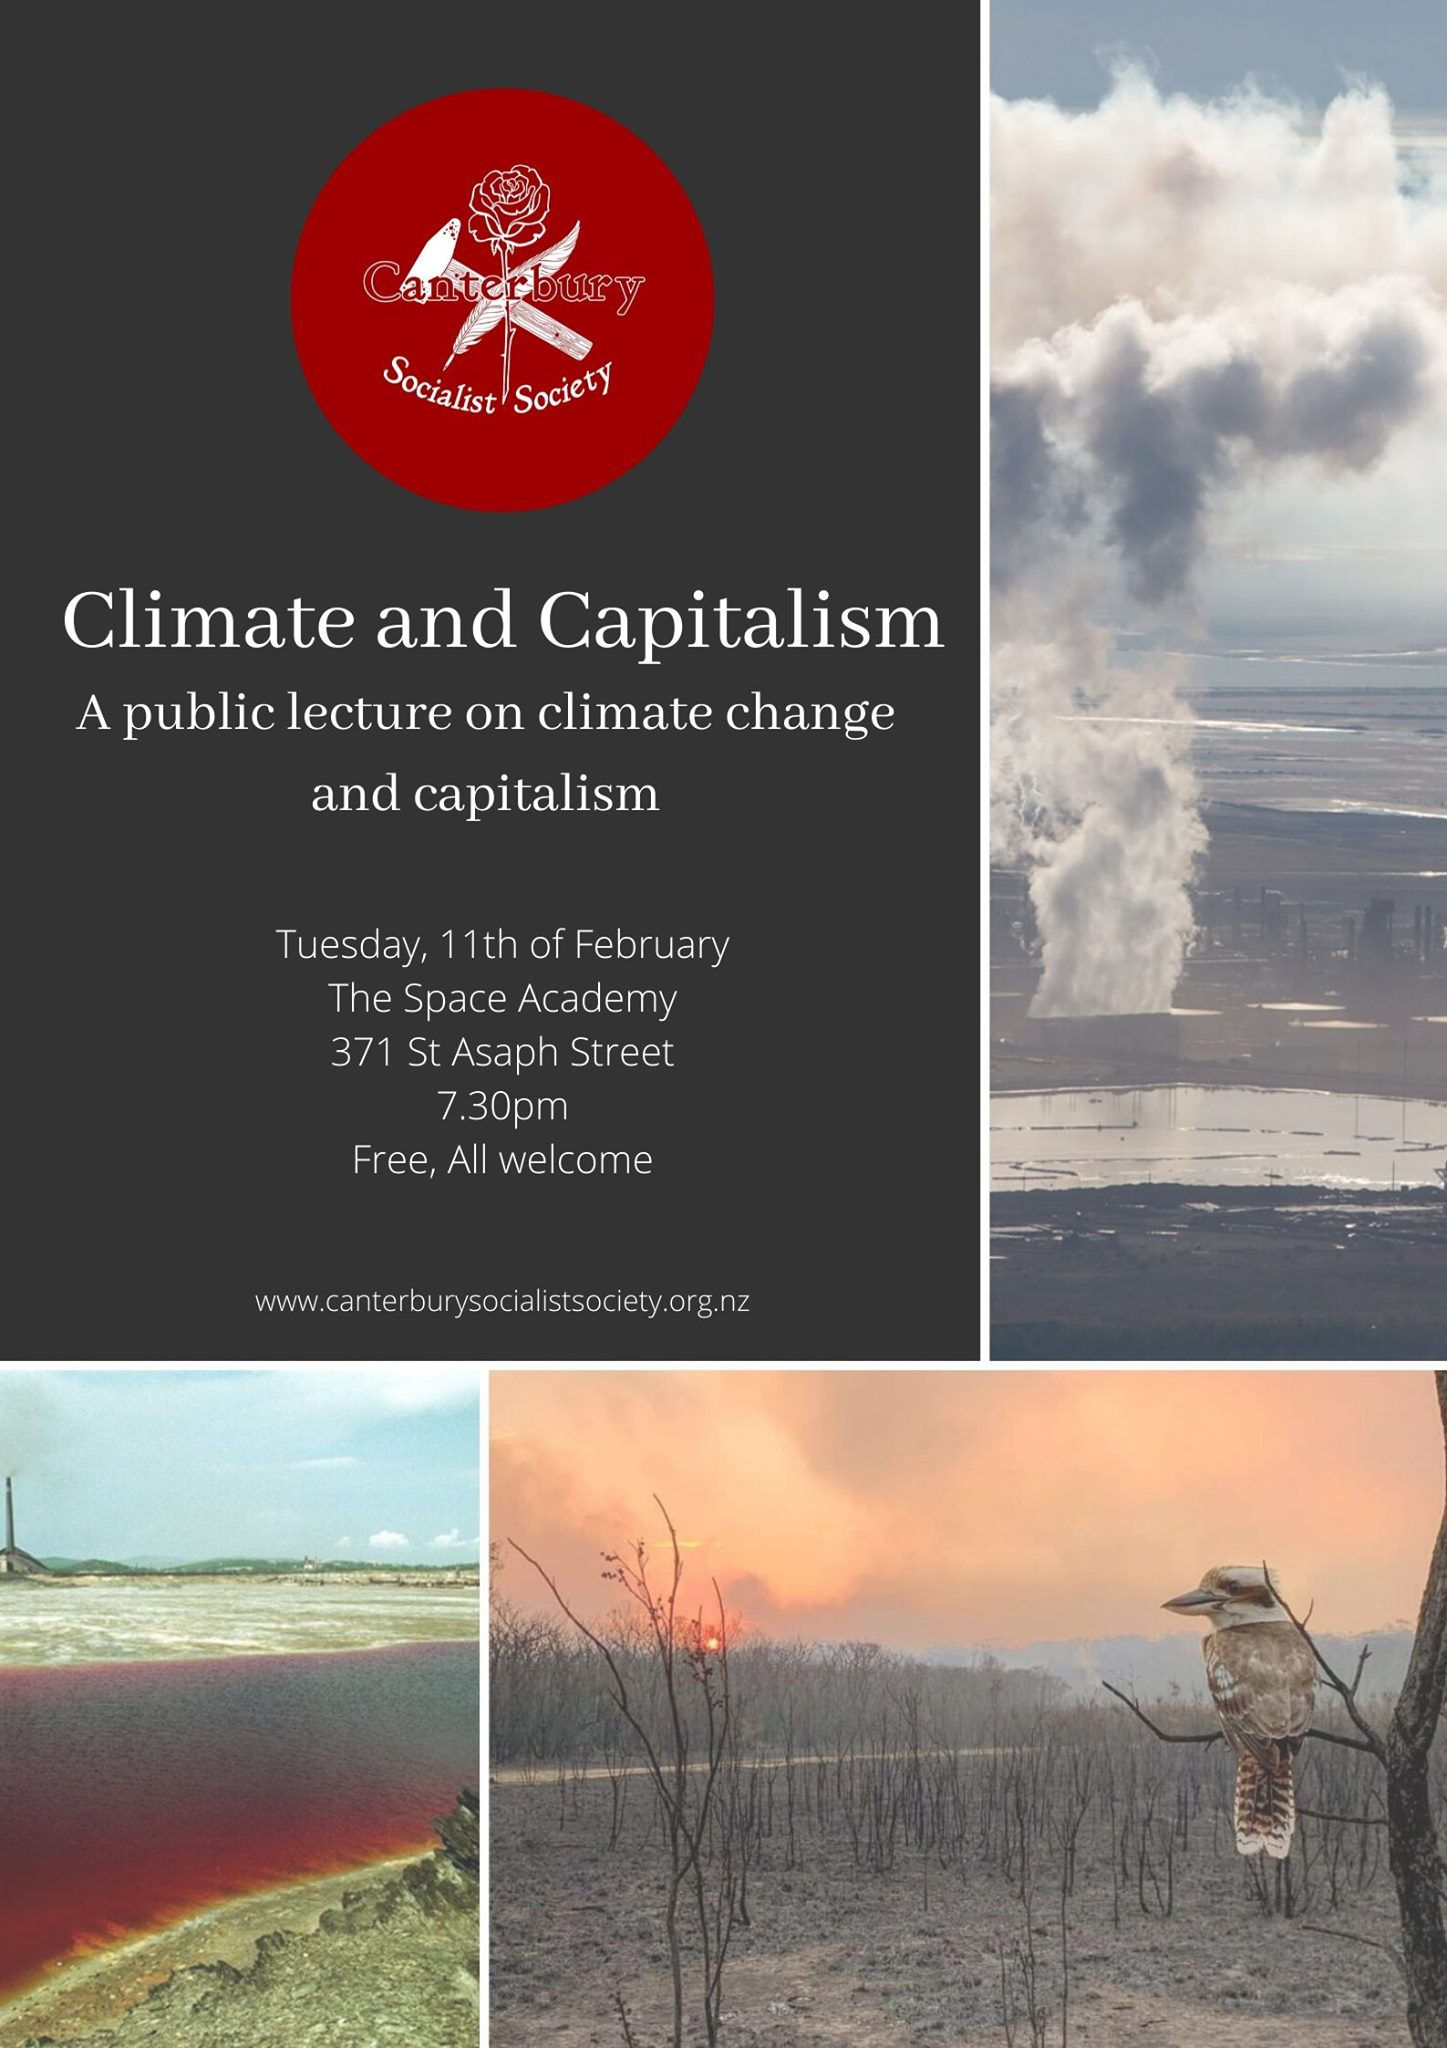 CSS Public Lecture: Climate and Capitalism